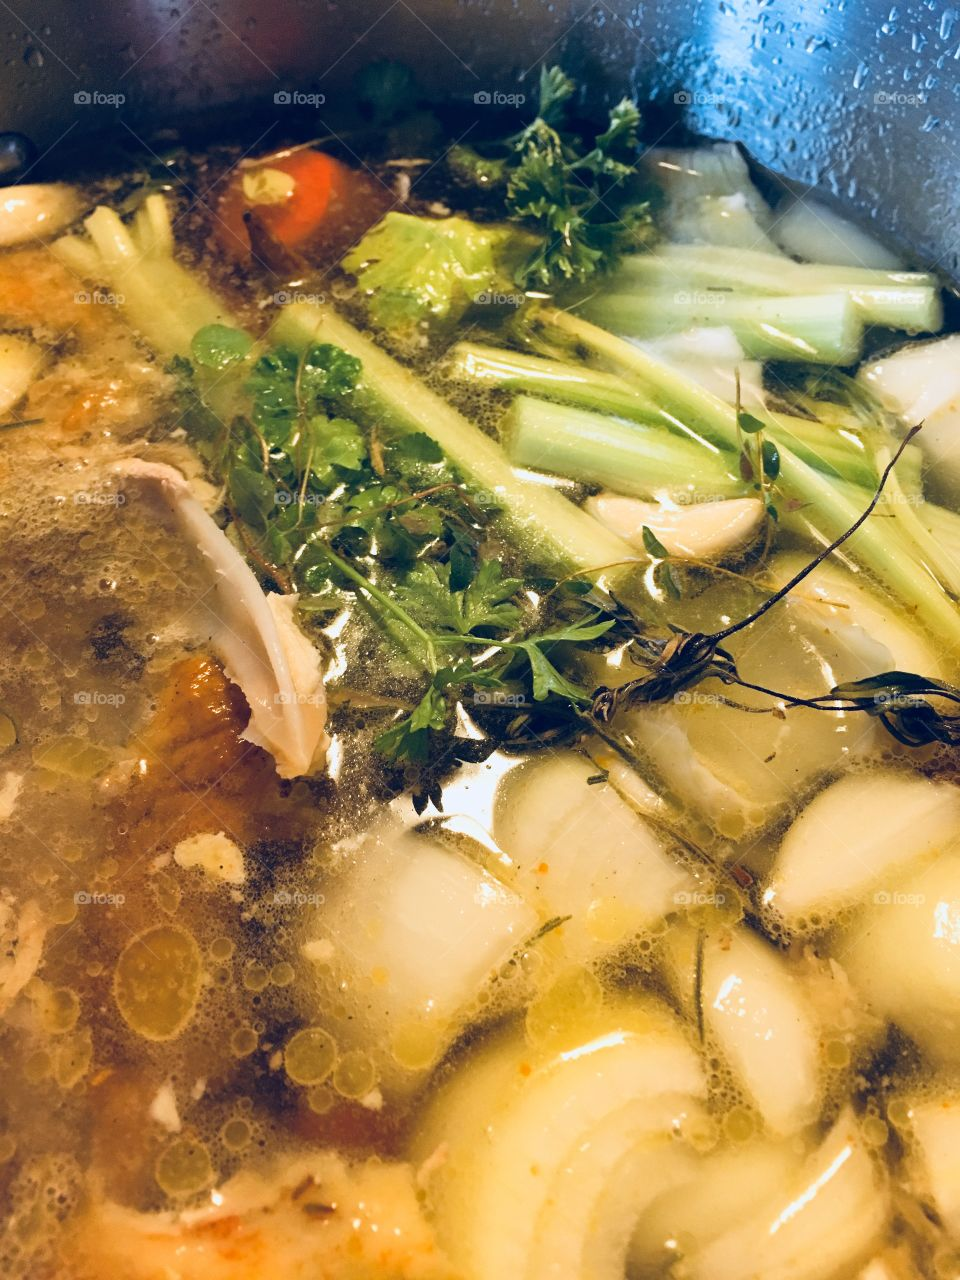 Healing, nutritious chicken bone broth. Soup pot filled with vegetables and herbs.